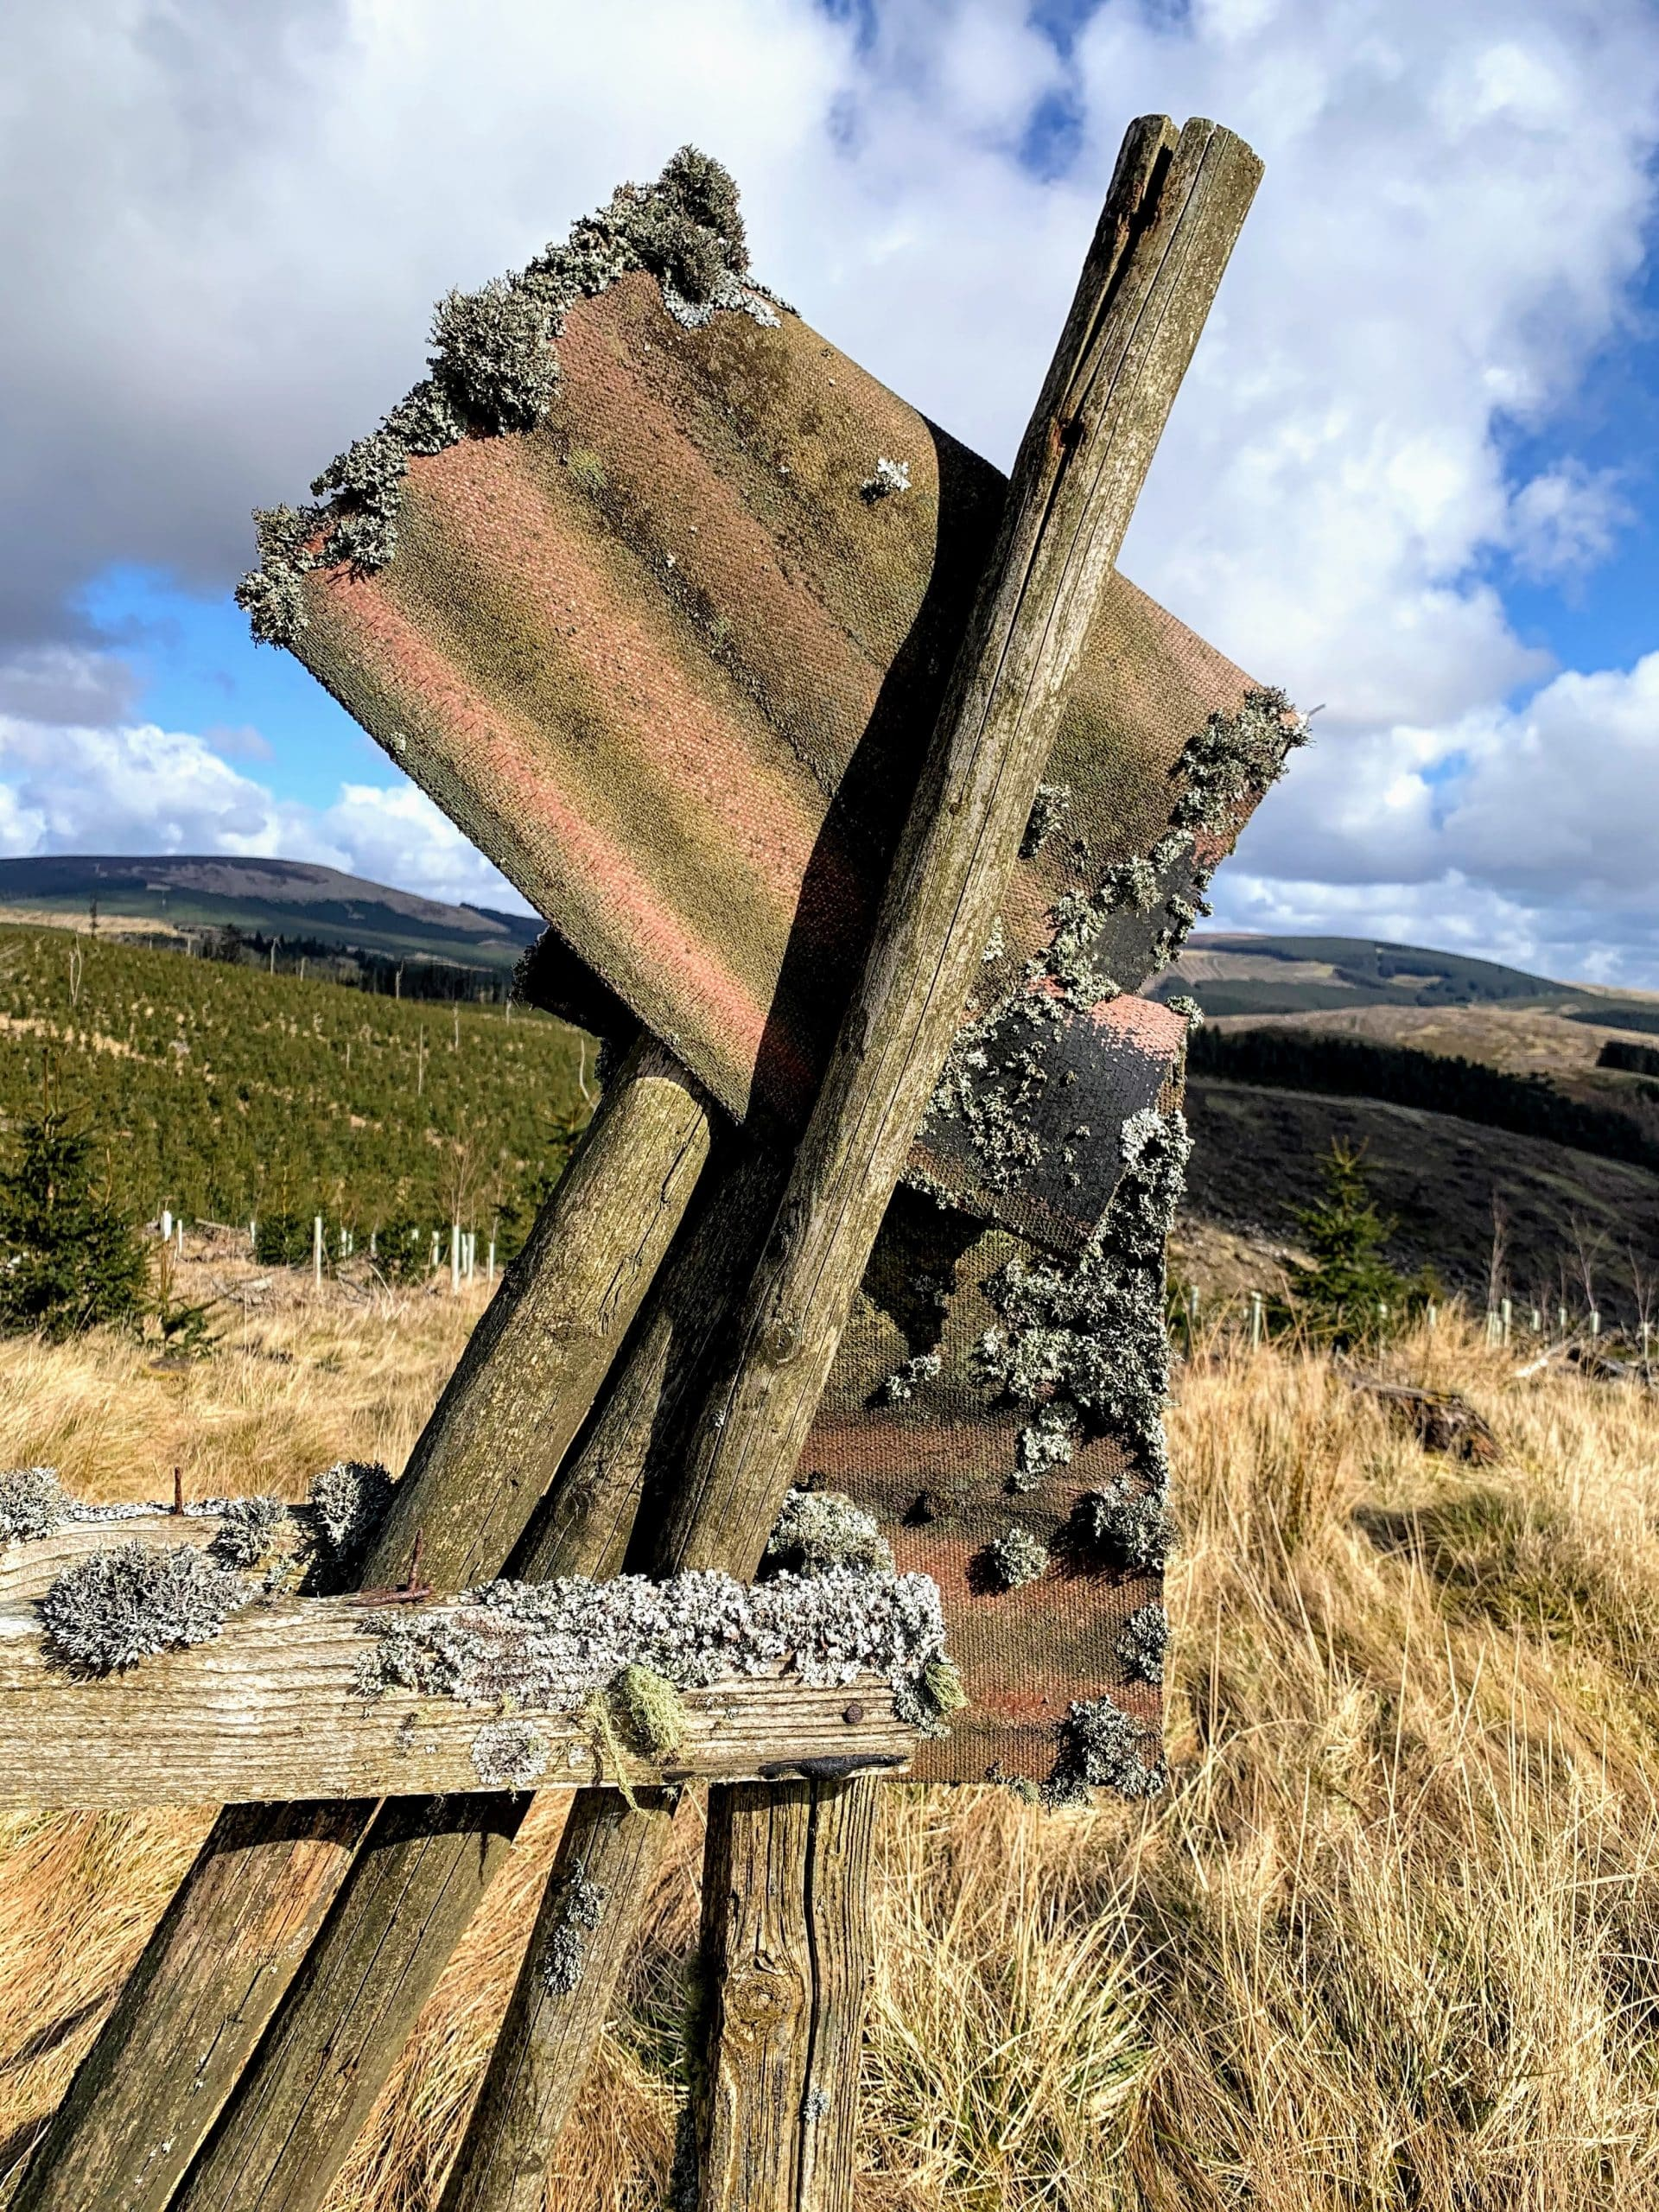 Lichens growing on a wooden frame